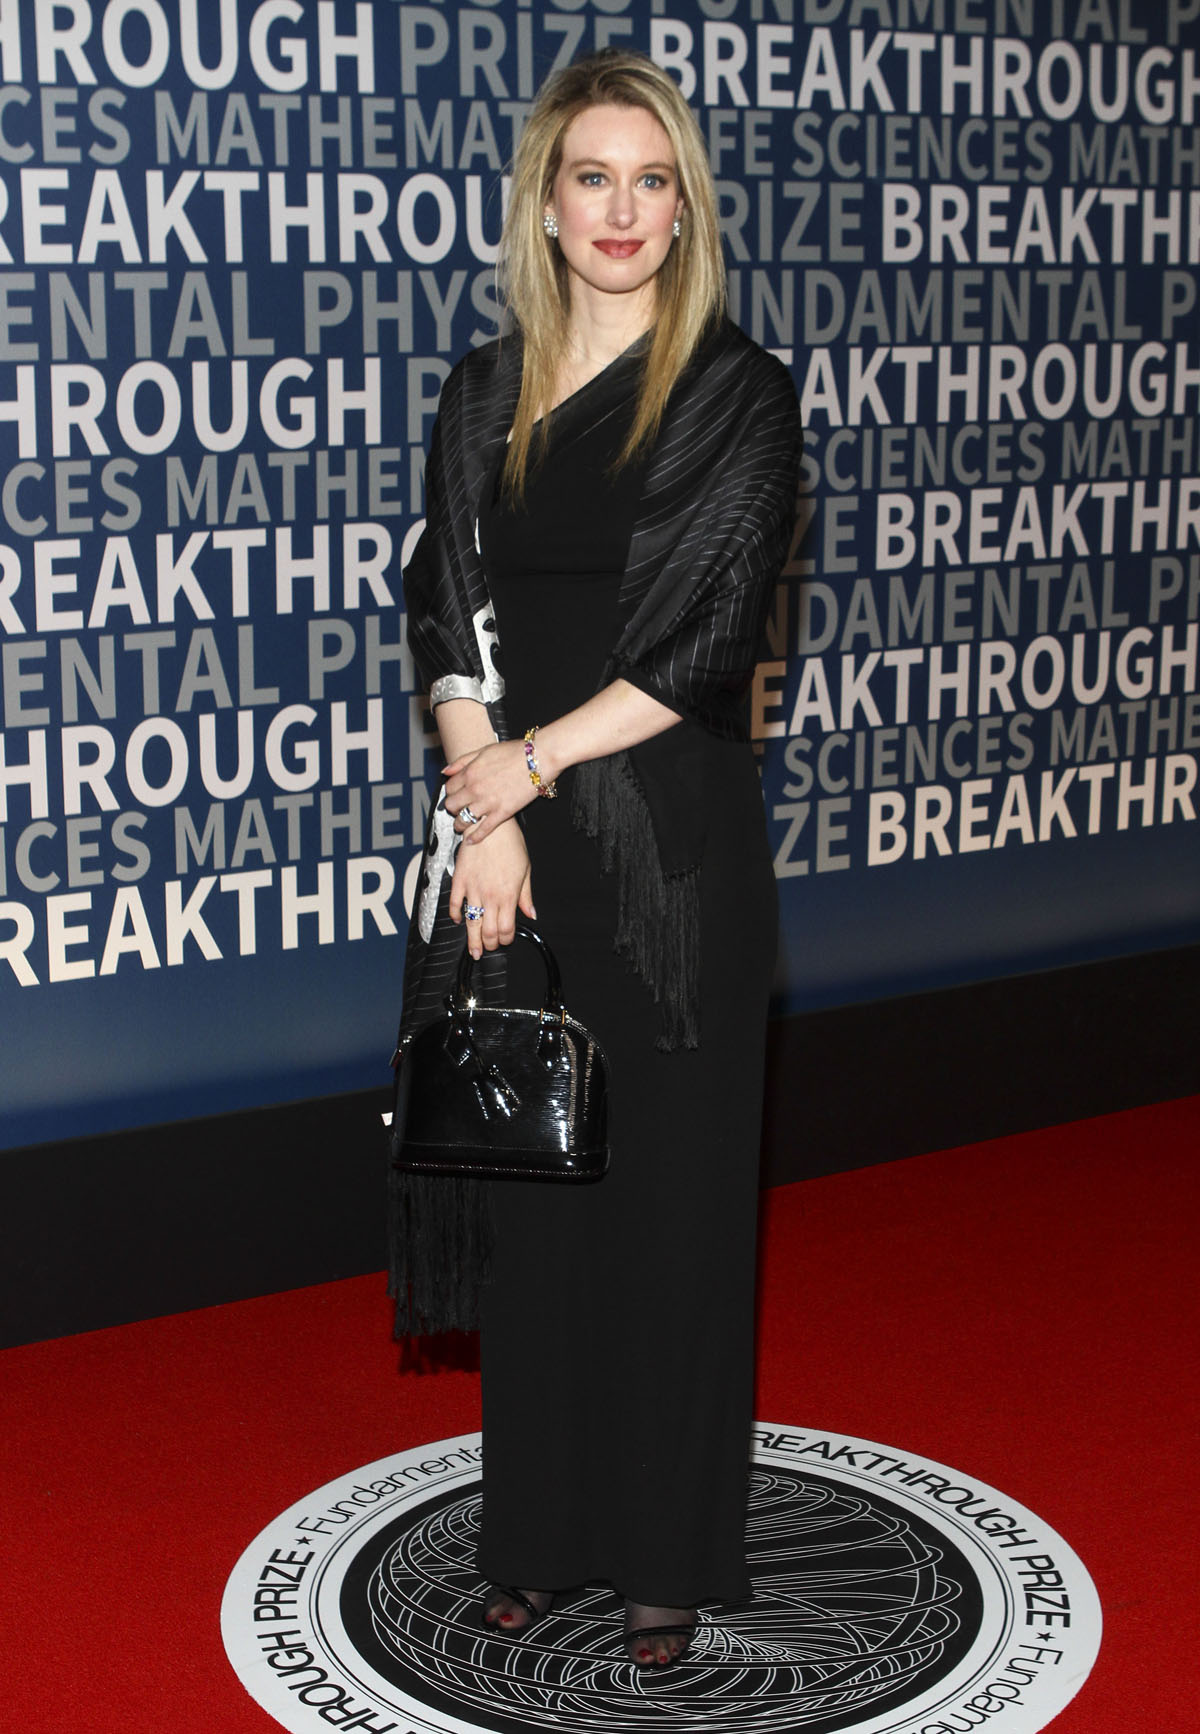 USA - 2015 - Breakthrough Prize Ceremony in Mountain View - Arrivals